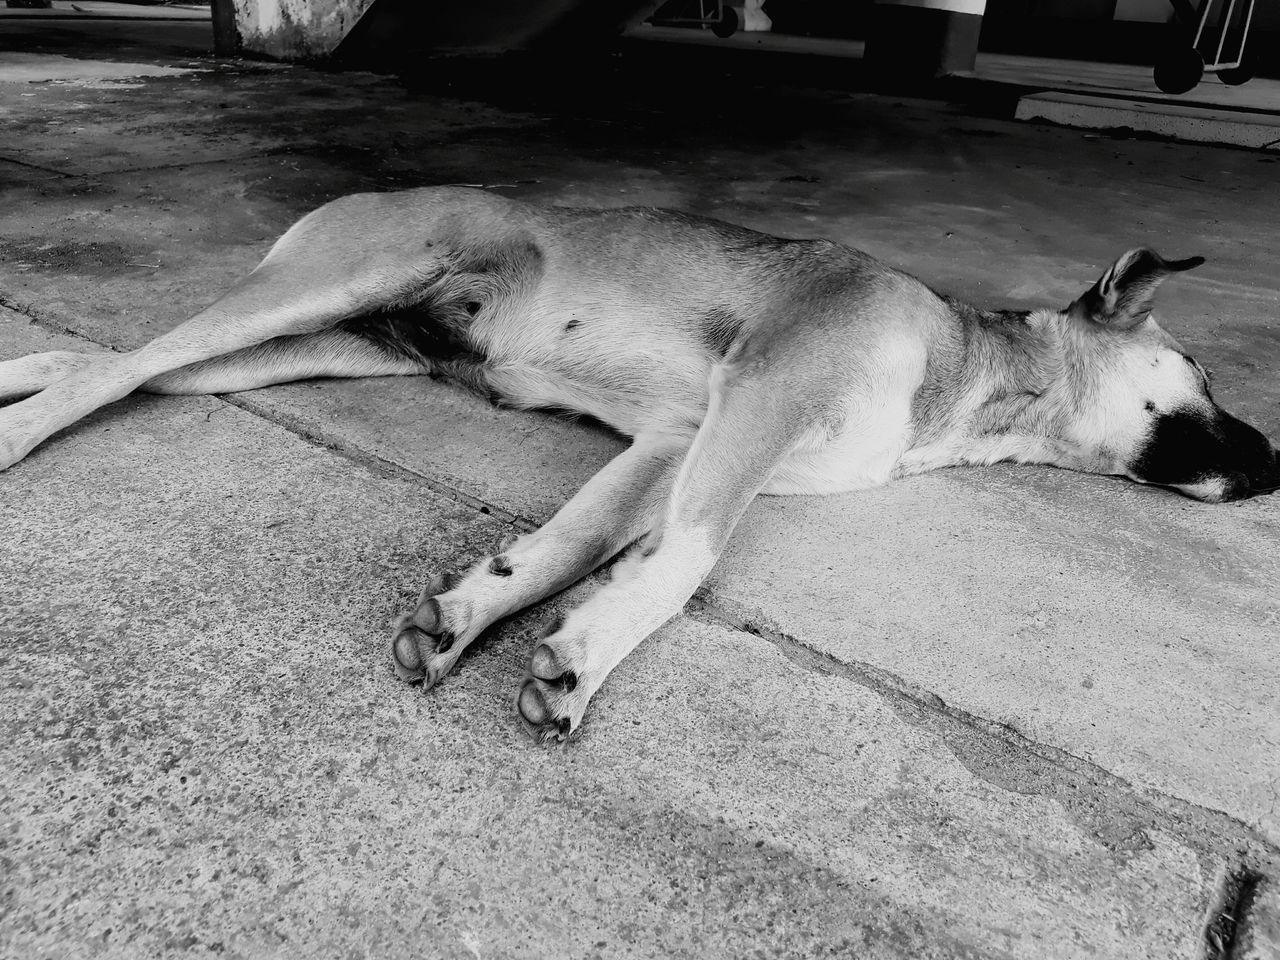 animal themes, one animal, mammal, relaxation, dog, sleeping, domestic animals, lying down, pets, day, no people, outdoors, animals in the wild, nature, close-up